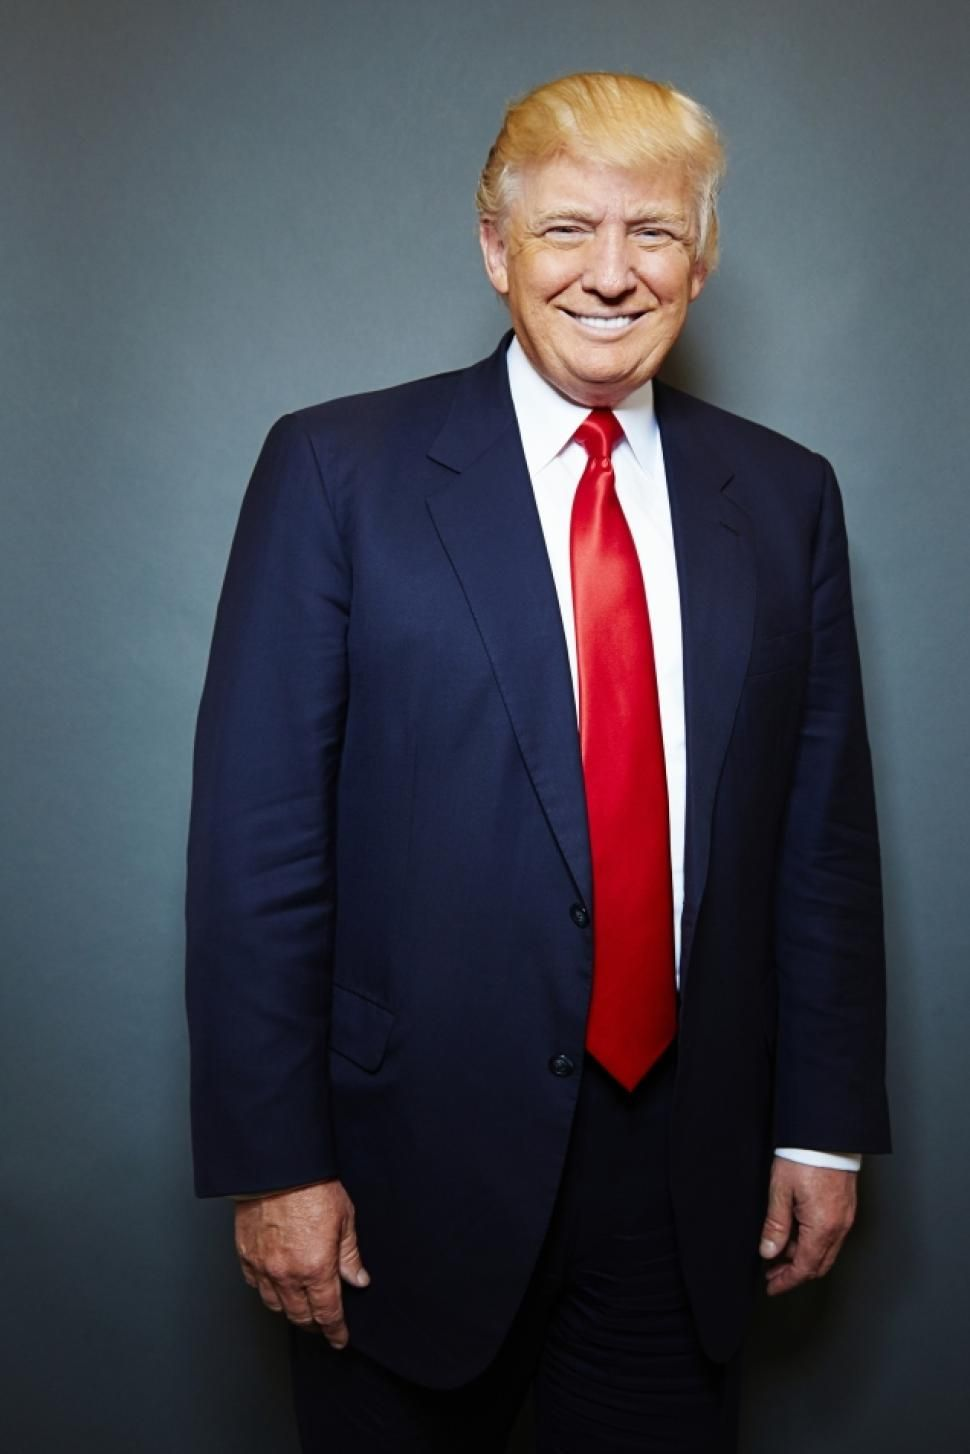 Image result for donald trump suit